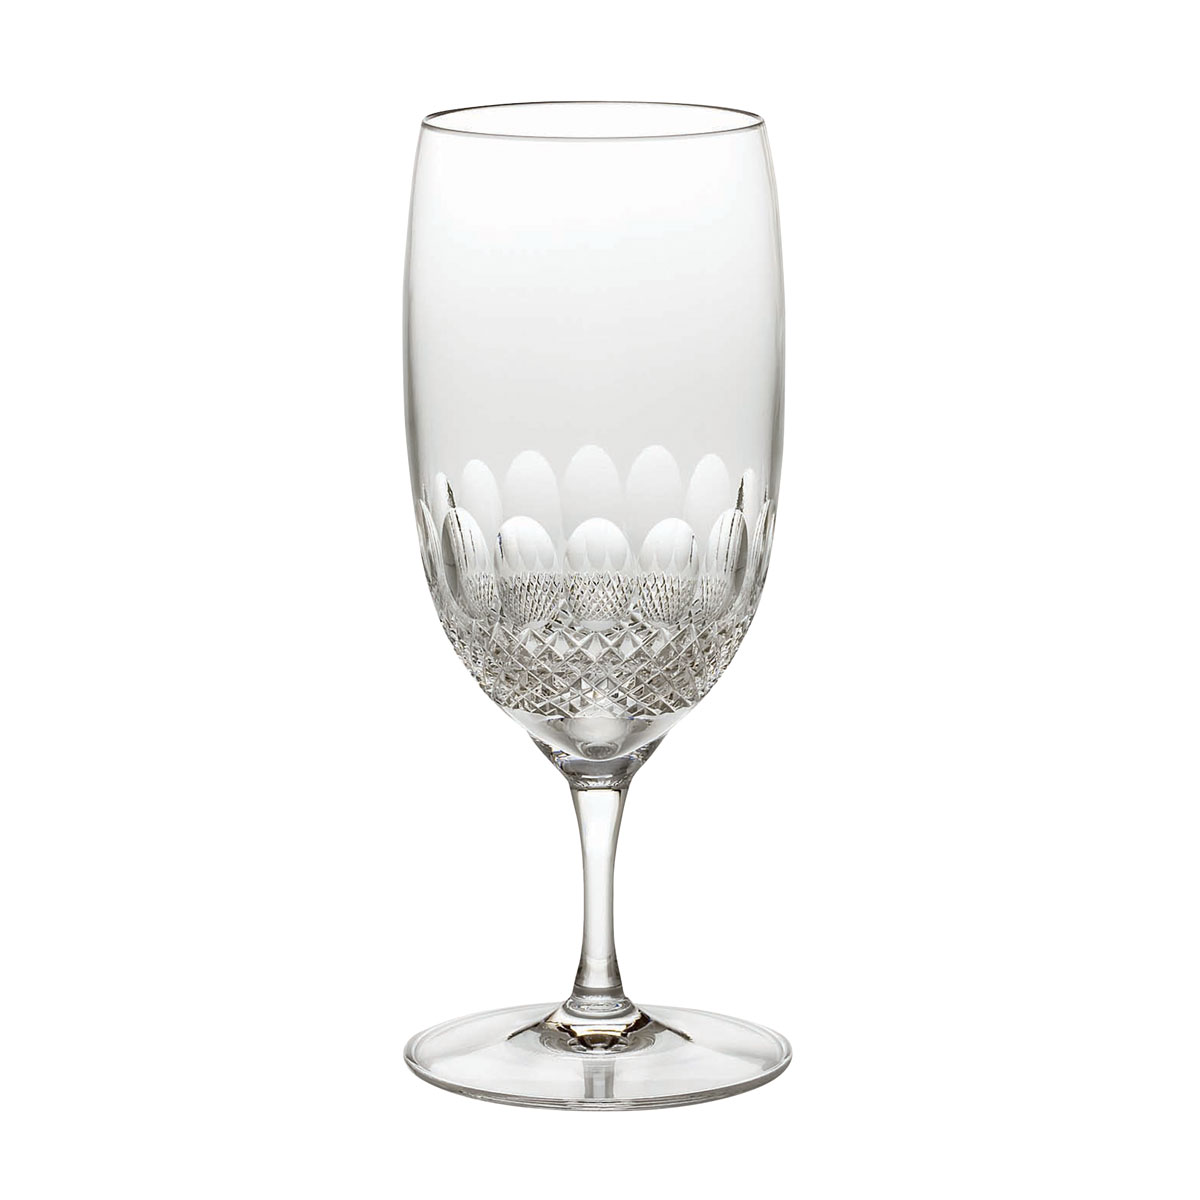 Waterford Crystal, Colleen Essence Champagne Crystal Flute, Single